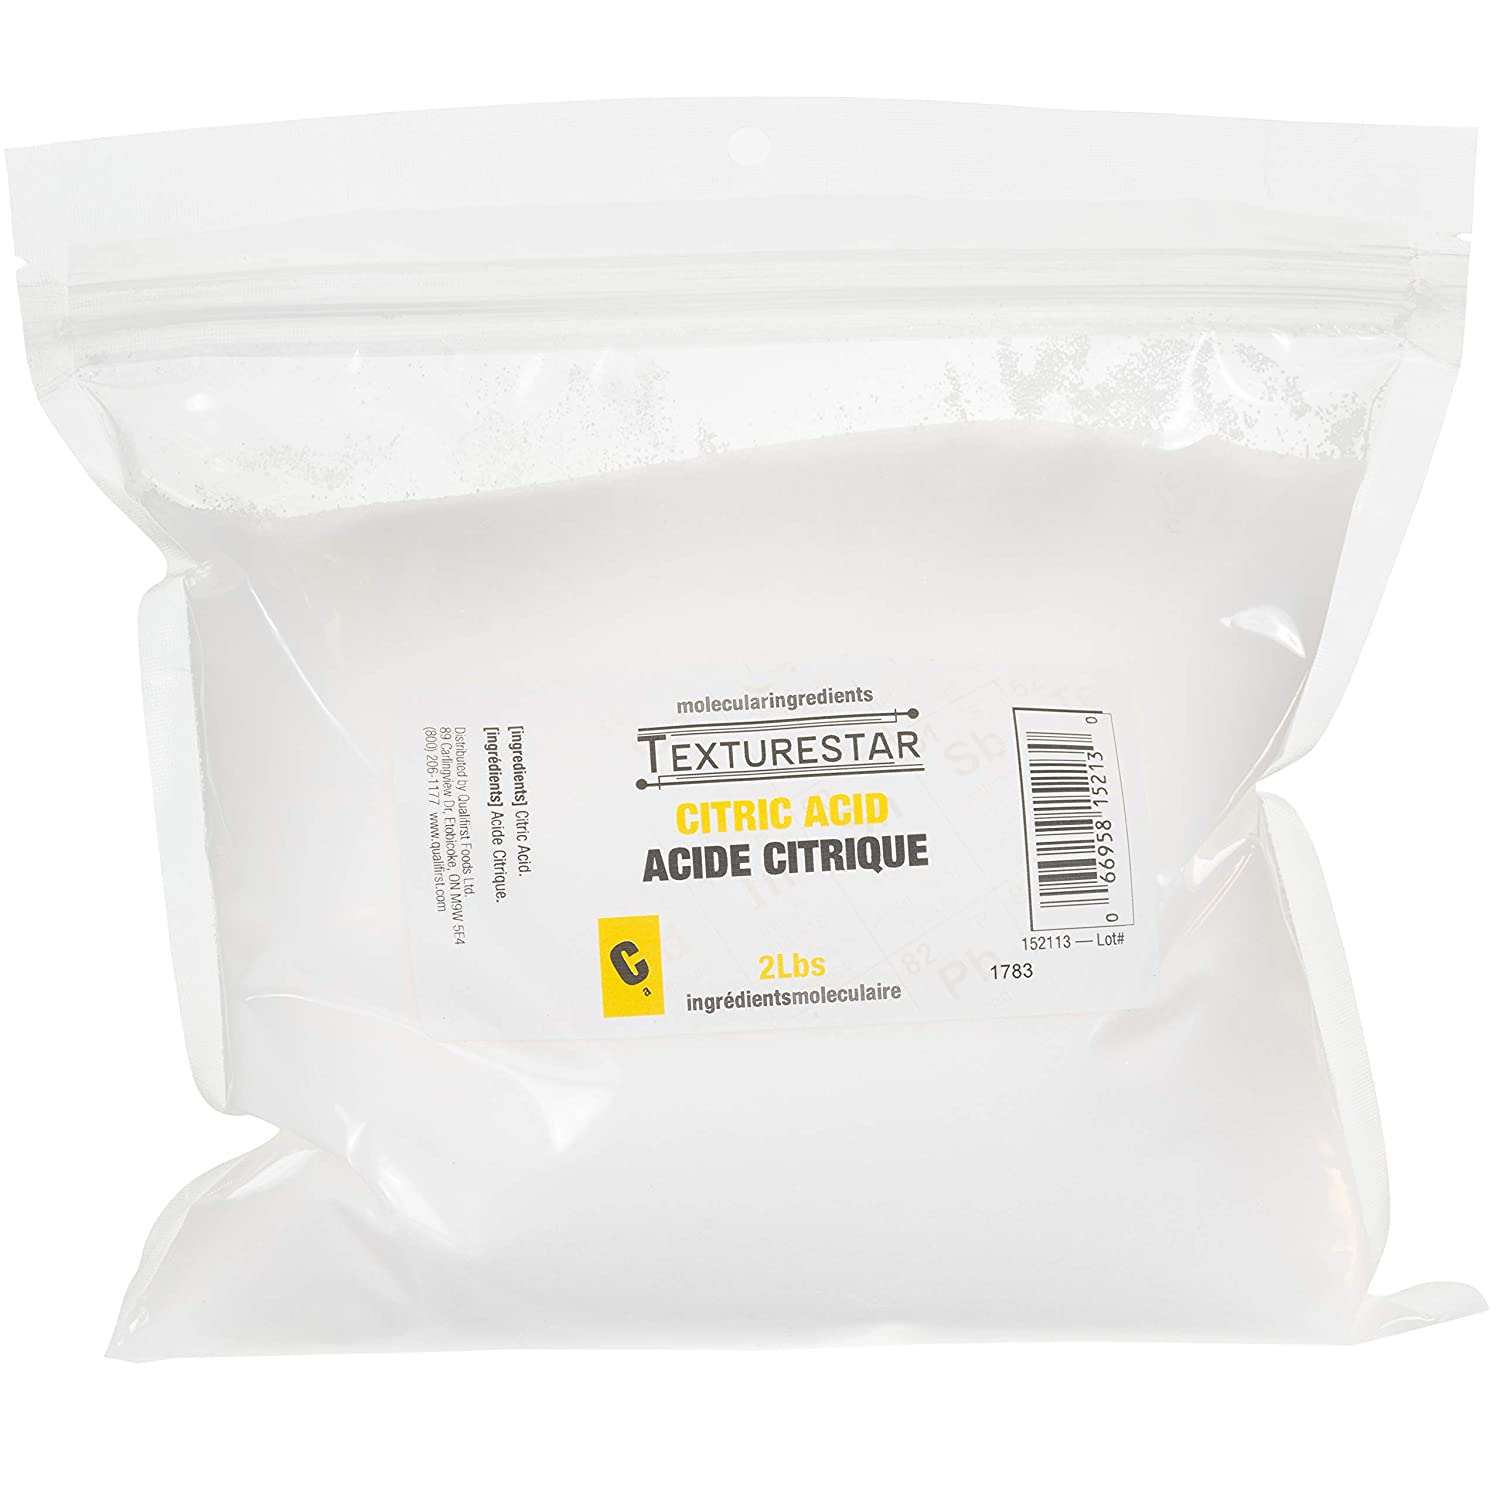 TextureStar Citric Acid Powder - 2 Pound (0.9 Kg), Perfect For Cleaning, Descaling, Bathbombs | All Natural, 100% Pure, Food Grade, Highest Quality, Non-GMO, Product of USA